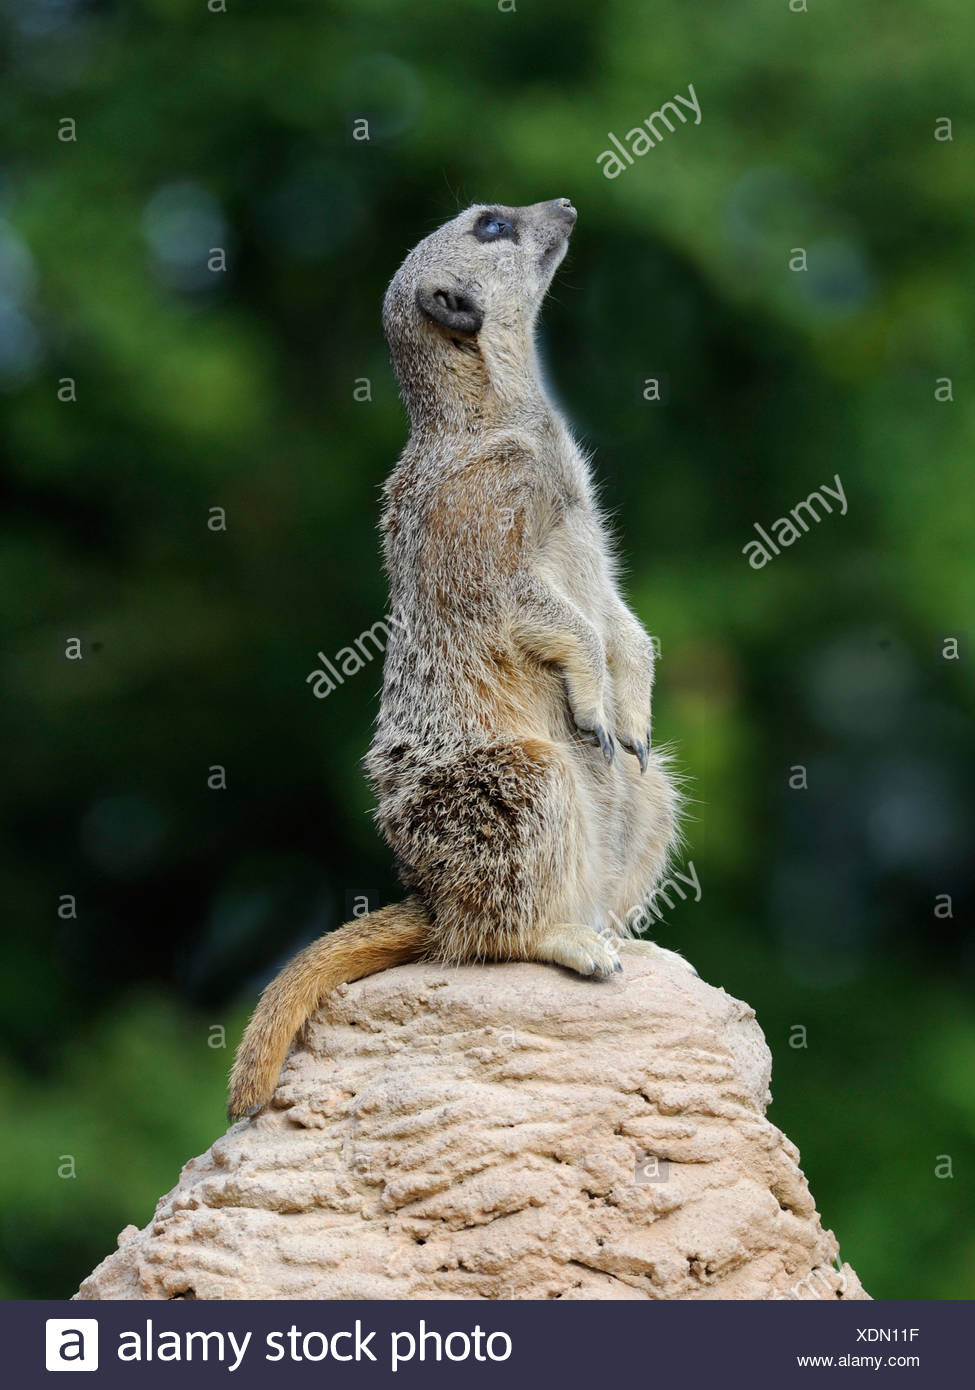 A meerkat looking upwards, things are looking up. - Stock Image